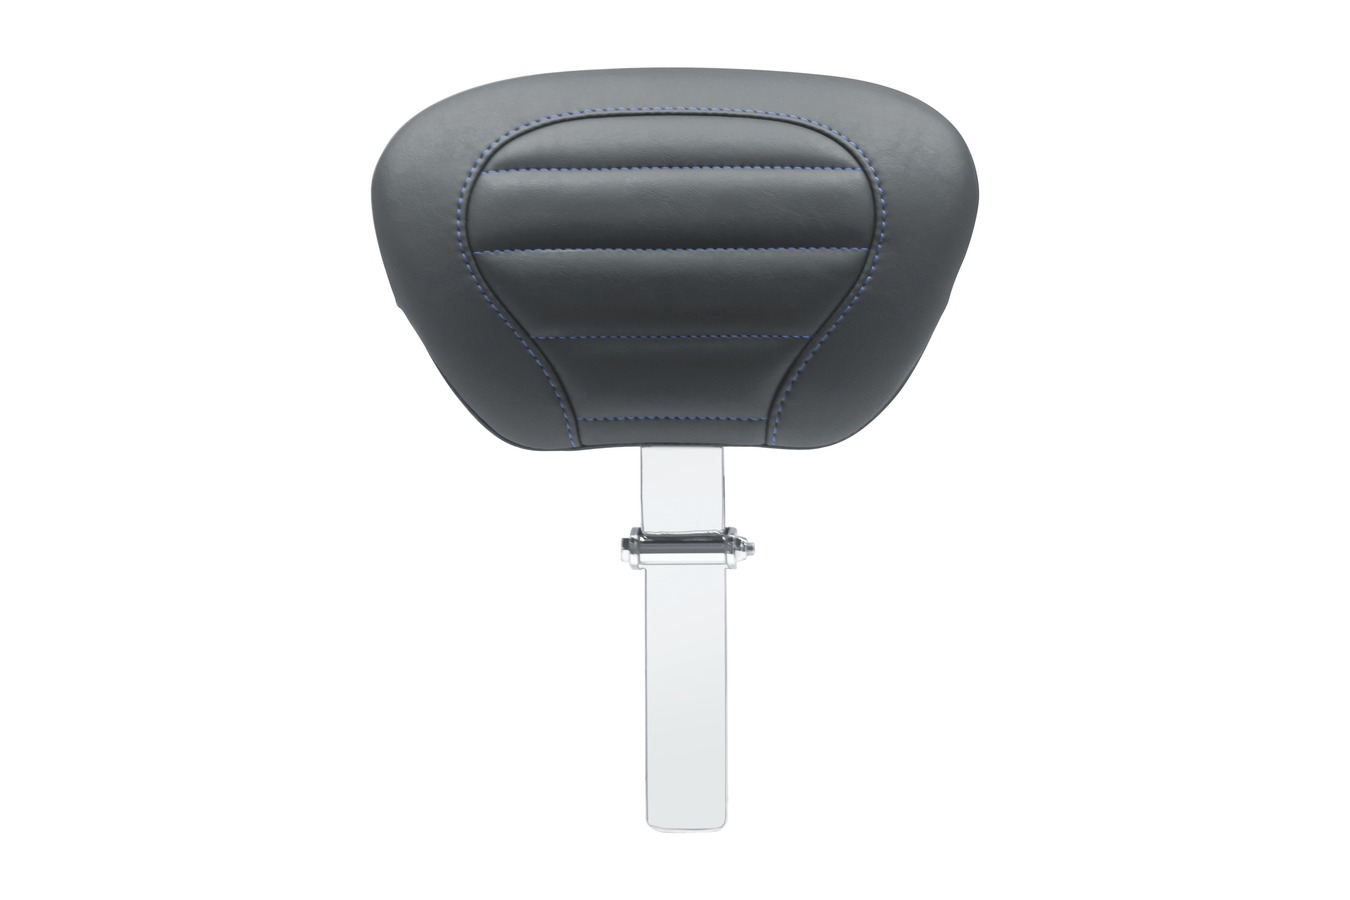 Super Touring Deluxe Driver Backrest with Sky Blue Stitching, Black